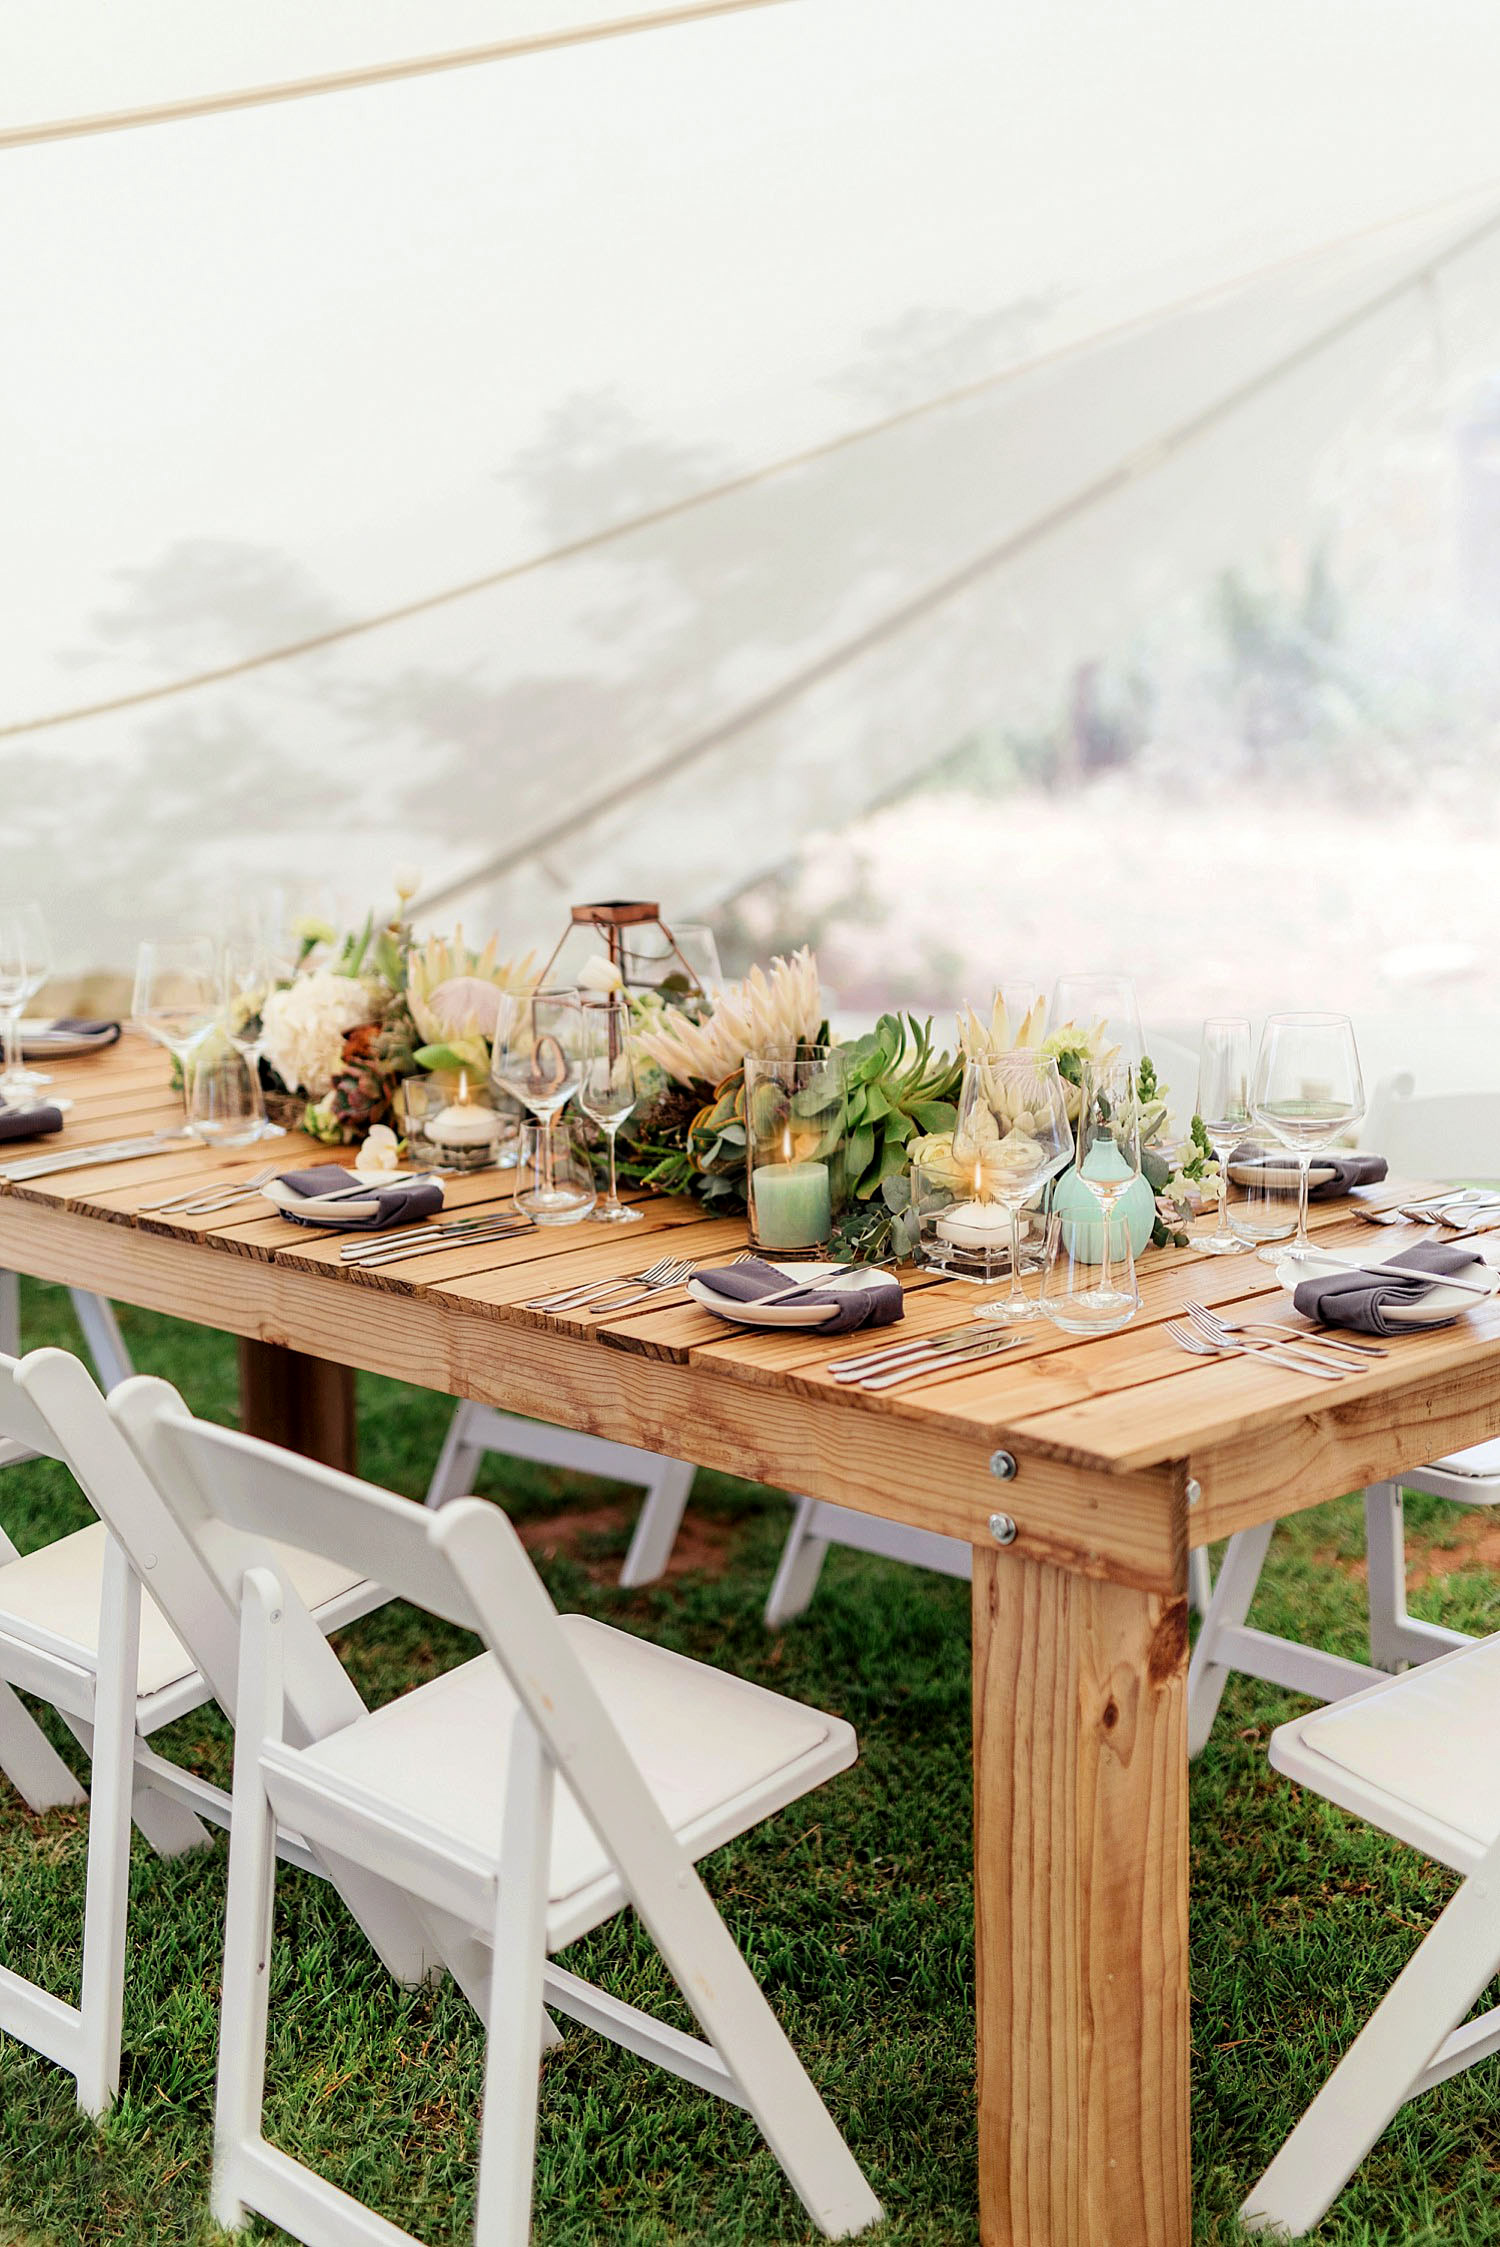 PALLET TABLE & CROCKERY